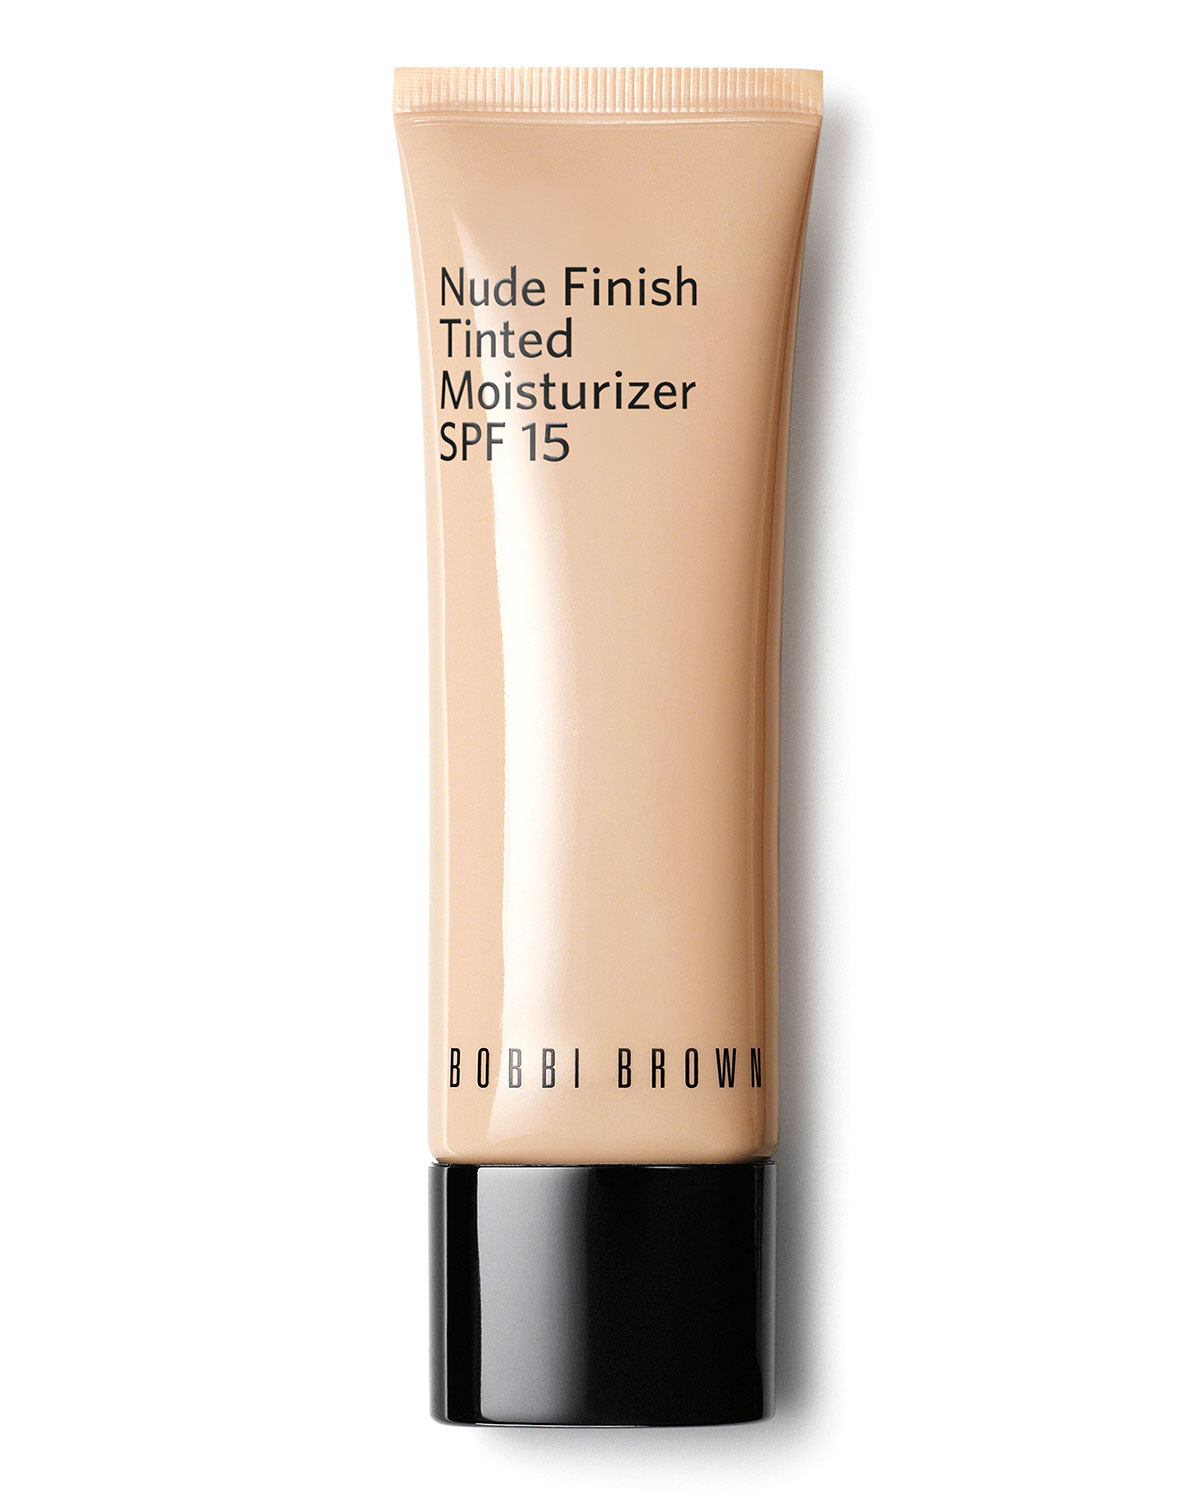 Nude Finish Tinted Moisturizer Spf 15 - Light To Medium Tint